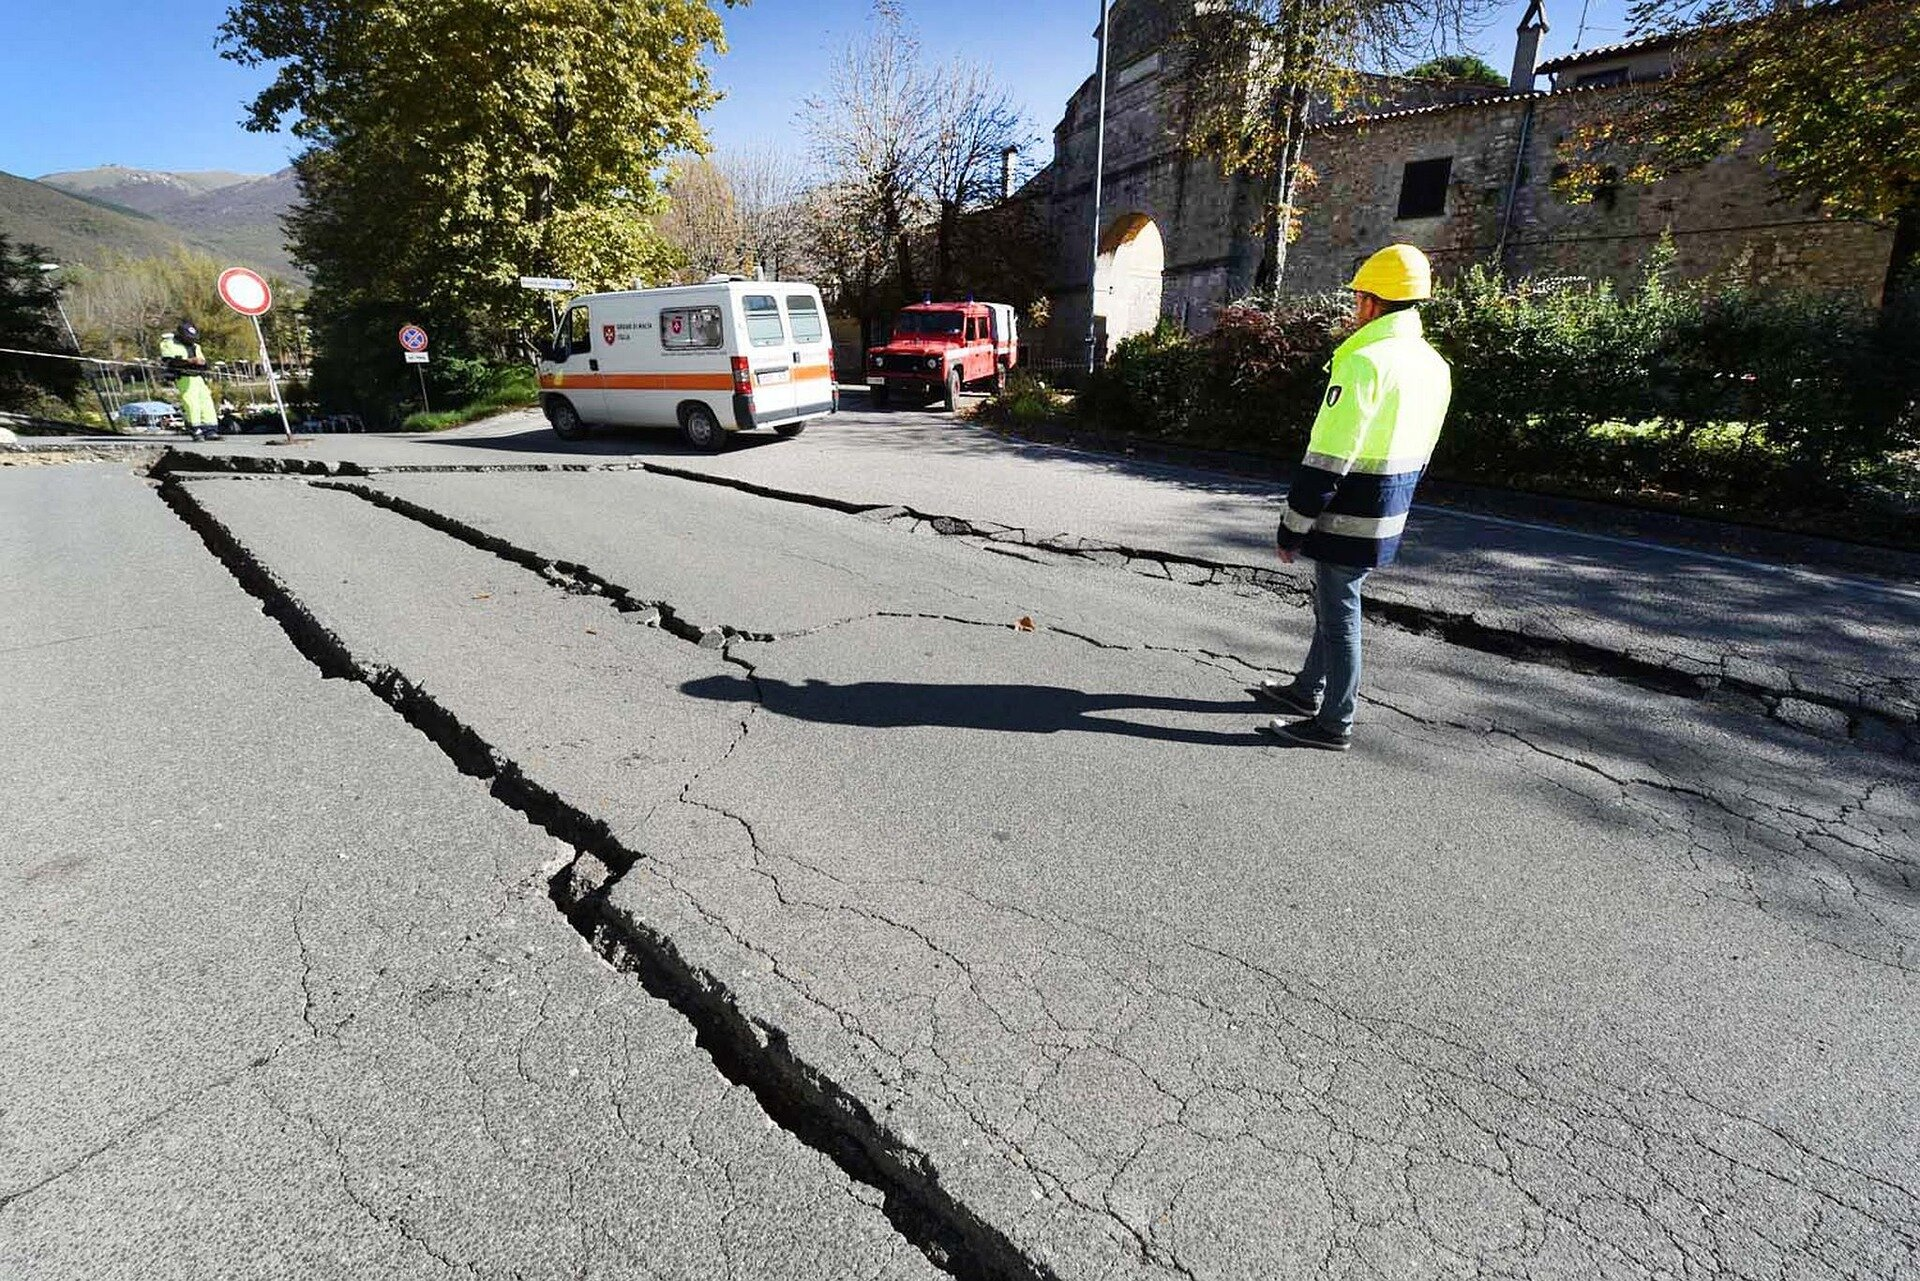 The 'slow earthquakes' that we cannot feel may help protect against the devastating ones